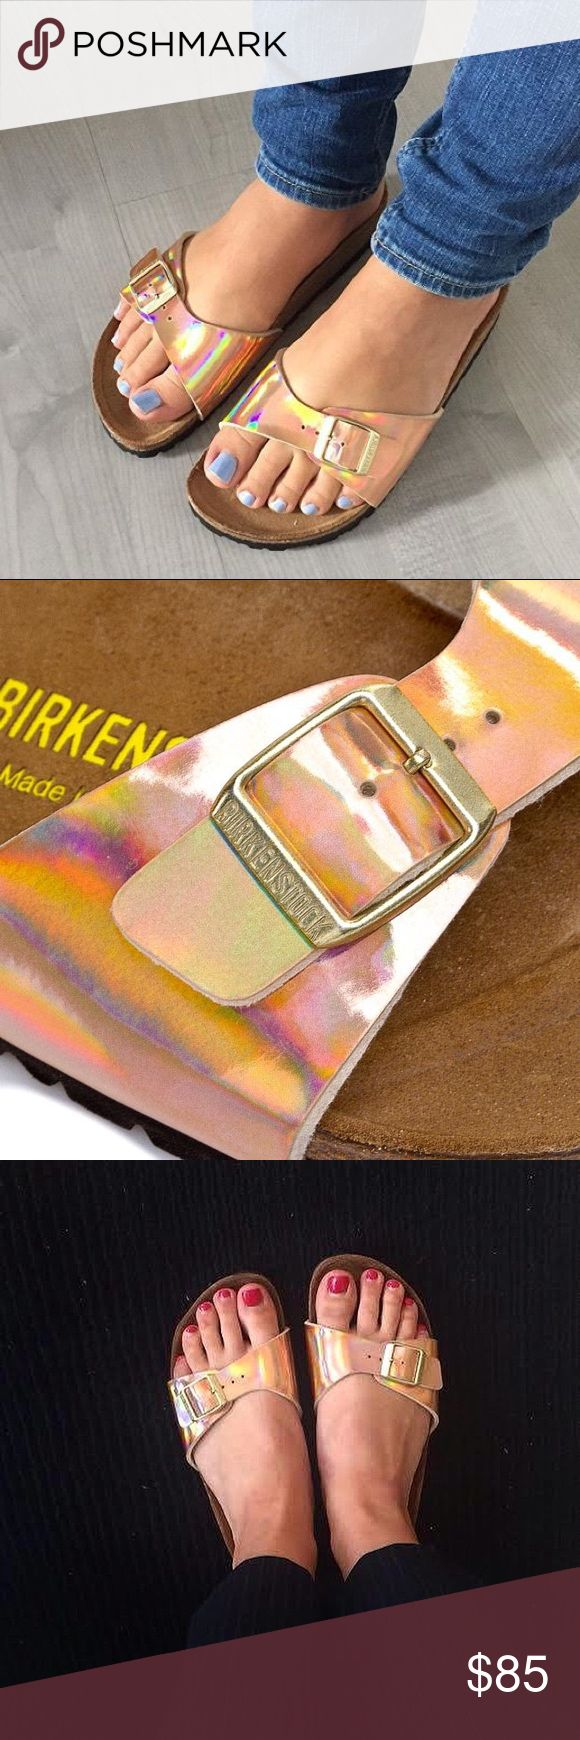 NWT Birkenstock Madrid Rose Gold 36 Sandals Mirror Features: Birkenstock Sandals Fit: Narrow fit - Designed for narrow feet Single strap sandal with adjustable buckle for comfort Birko-Flor upper Shaped cork and latex foot bed Shock-absorbing EVA sole Branding to the footbed Built-in arch support Toe grip for added support & comfort Deep heel cup keeps your foot properly aligned Material: Leather, cork, EVA Birkenstock Shoes Sandals